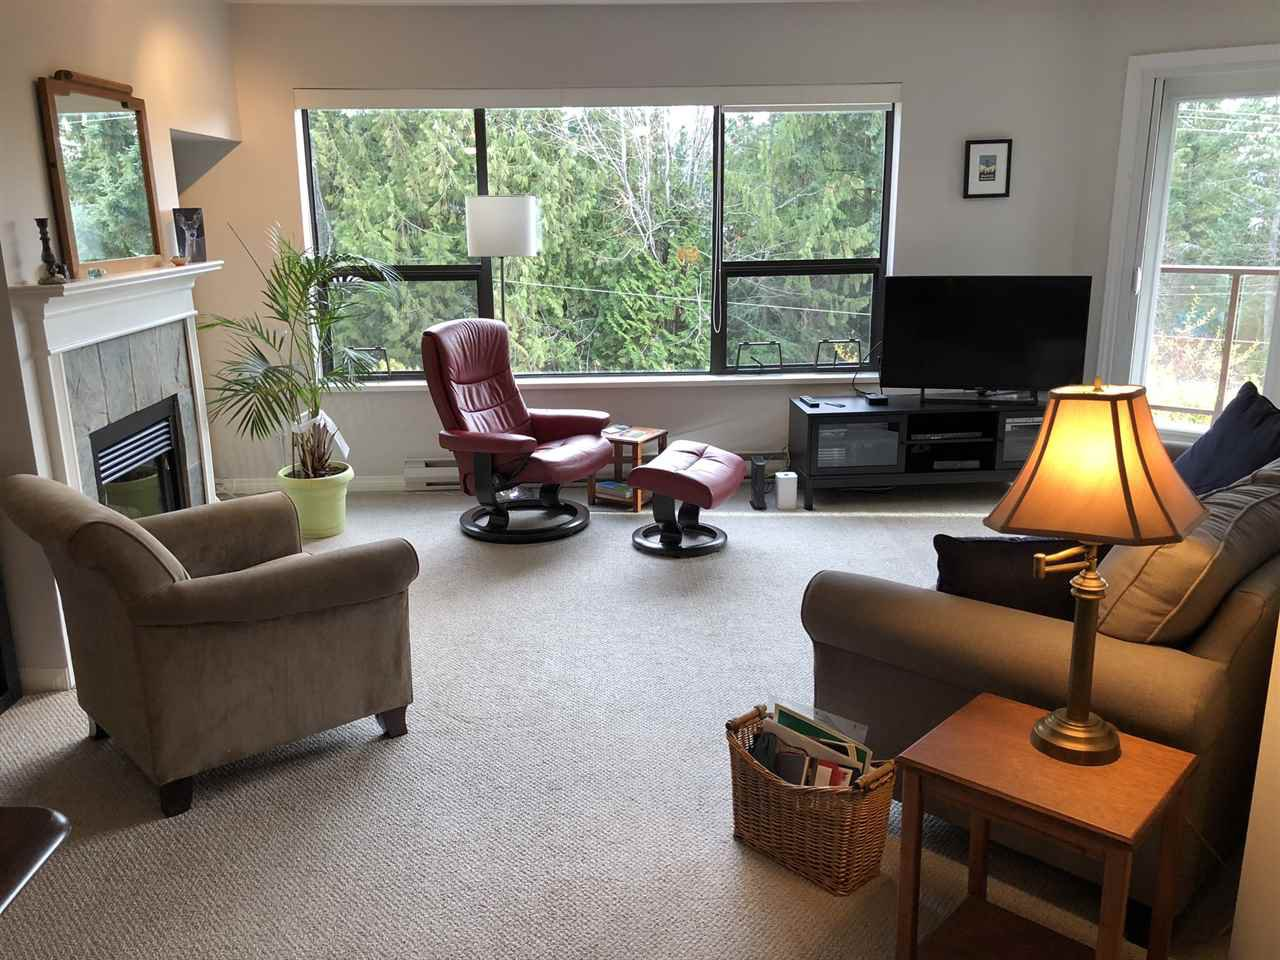 """Main Photo: 203 5855 COWRIE Street in Sechelt: Sechelt District Condo for sale in """"THE OSPREY"""" (Sunshine Coast)  : MLS®# R2367414"""